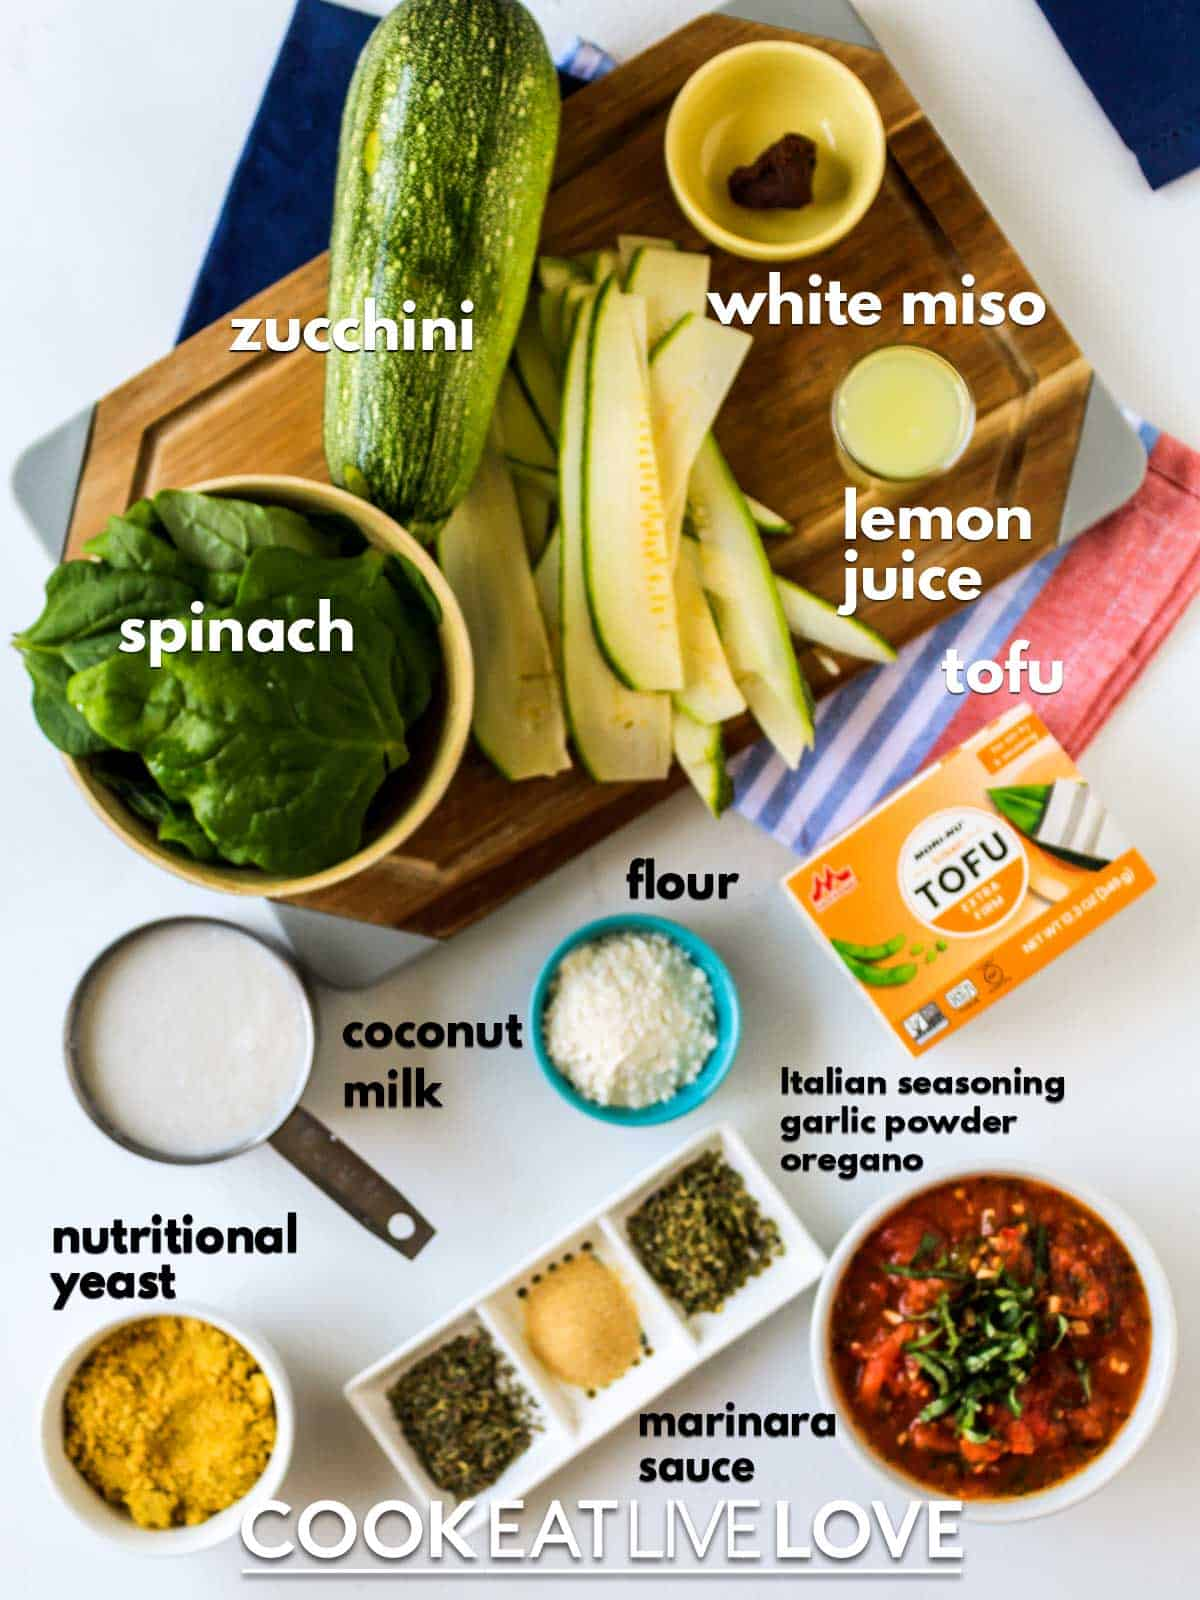 Ingredients to make zucchini lasagna on the table with text labels